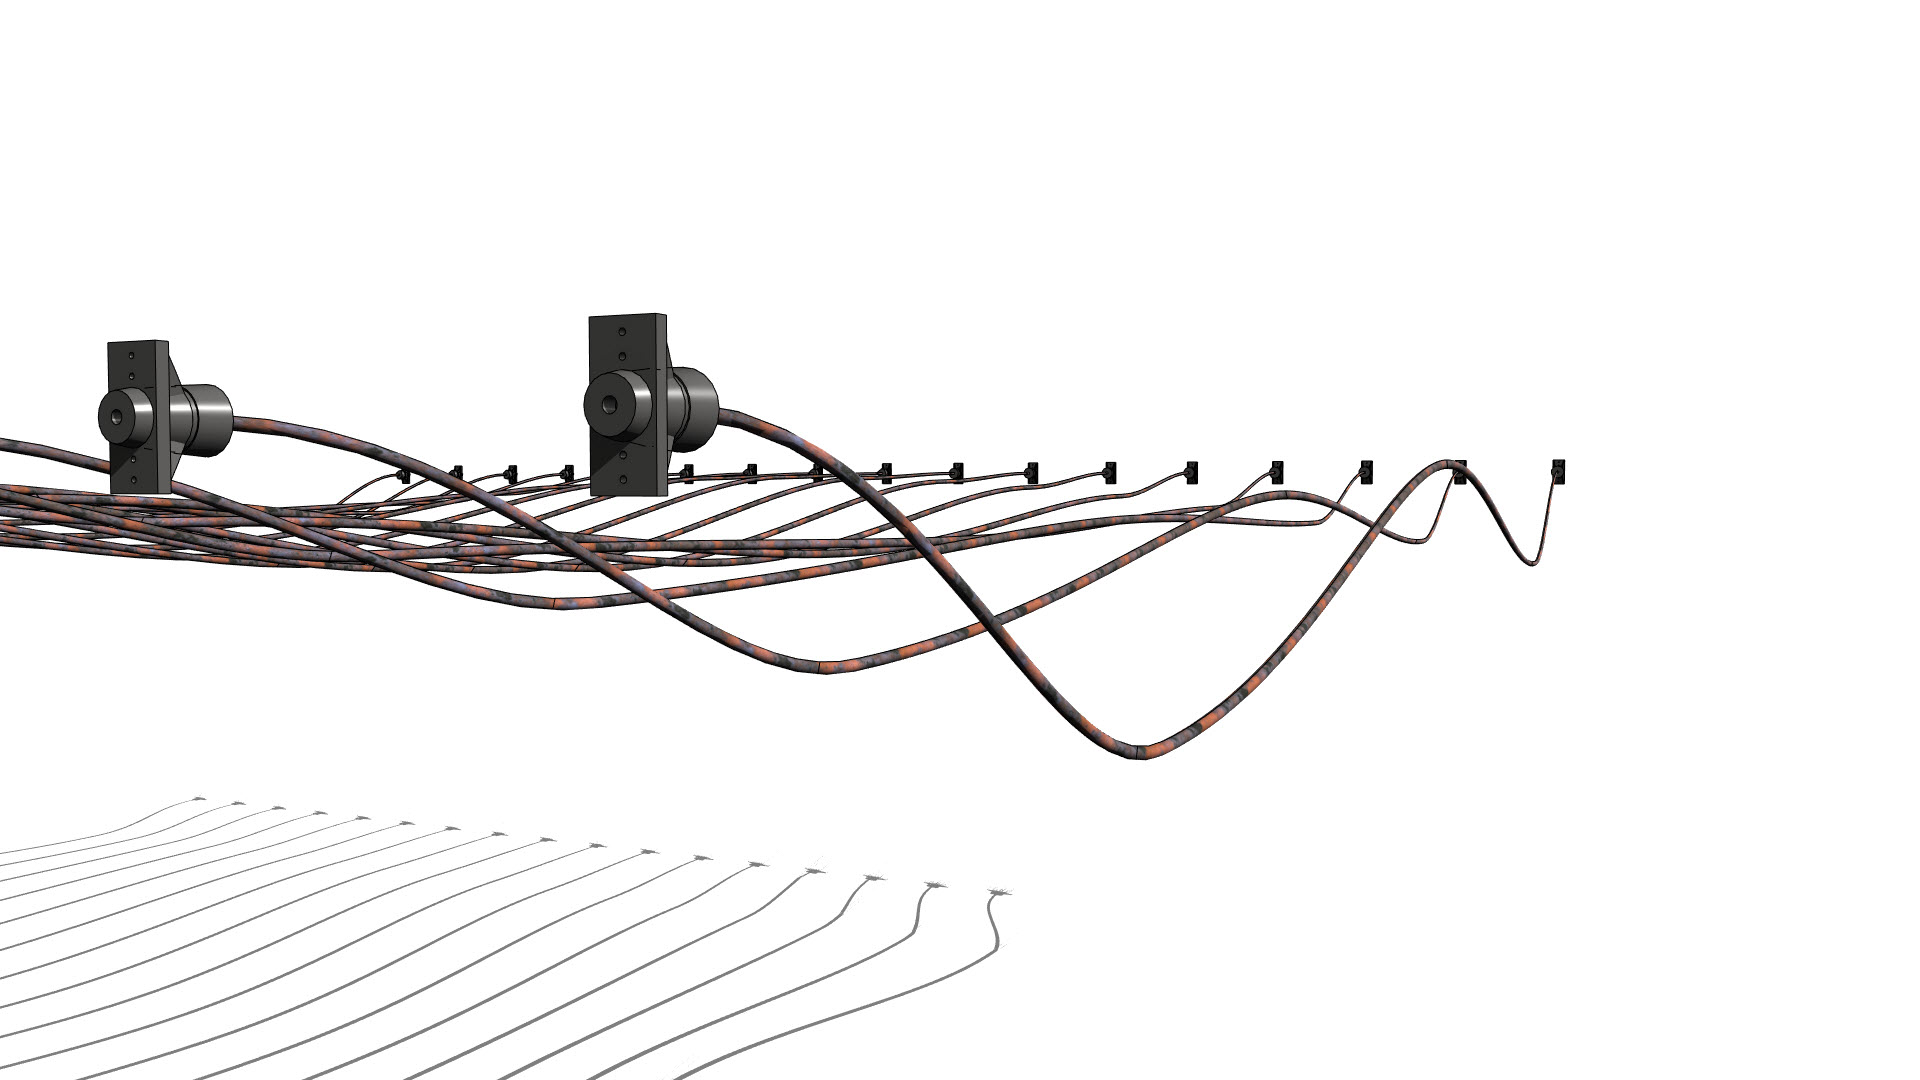 Post Tension Structures In Revit Continued 5 Point Bars